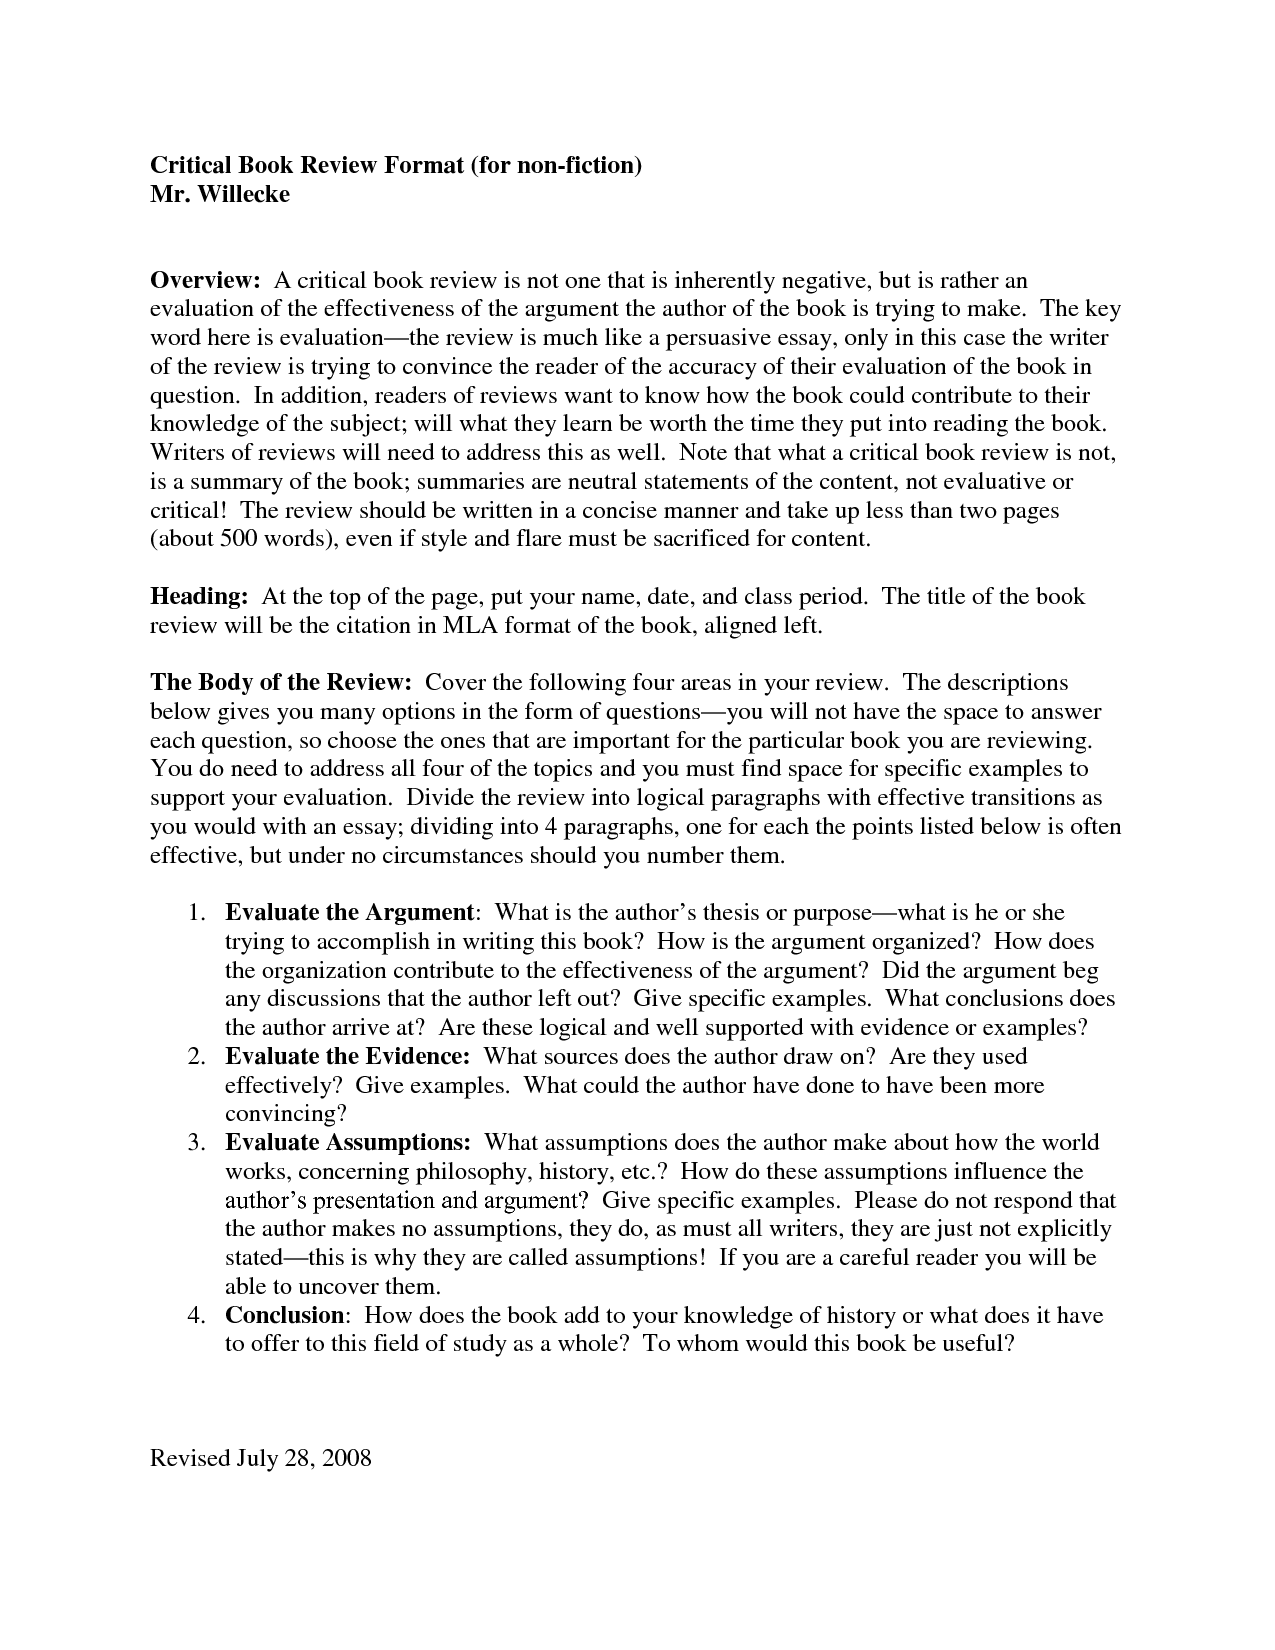 002 Essay Example Correct My Bunch Ideas Of Best Photos Critique Structure Critical Book Review In How To Write Apa Stupendous Auto Who Can Proofread Full